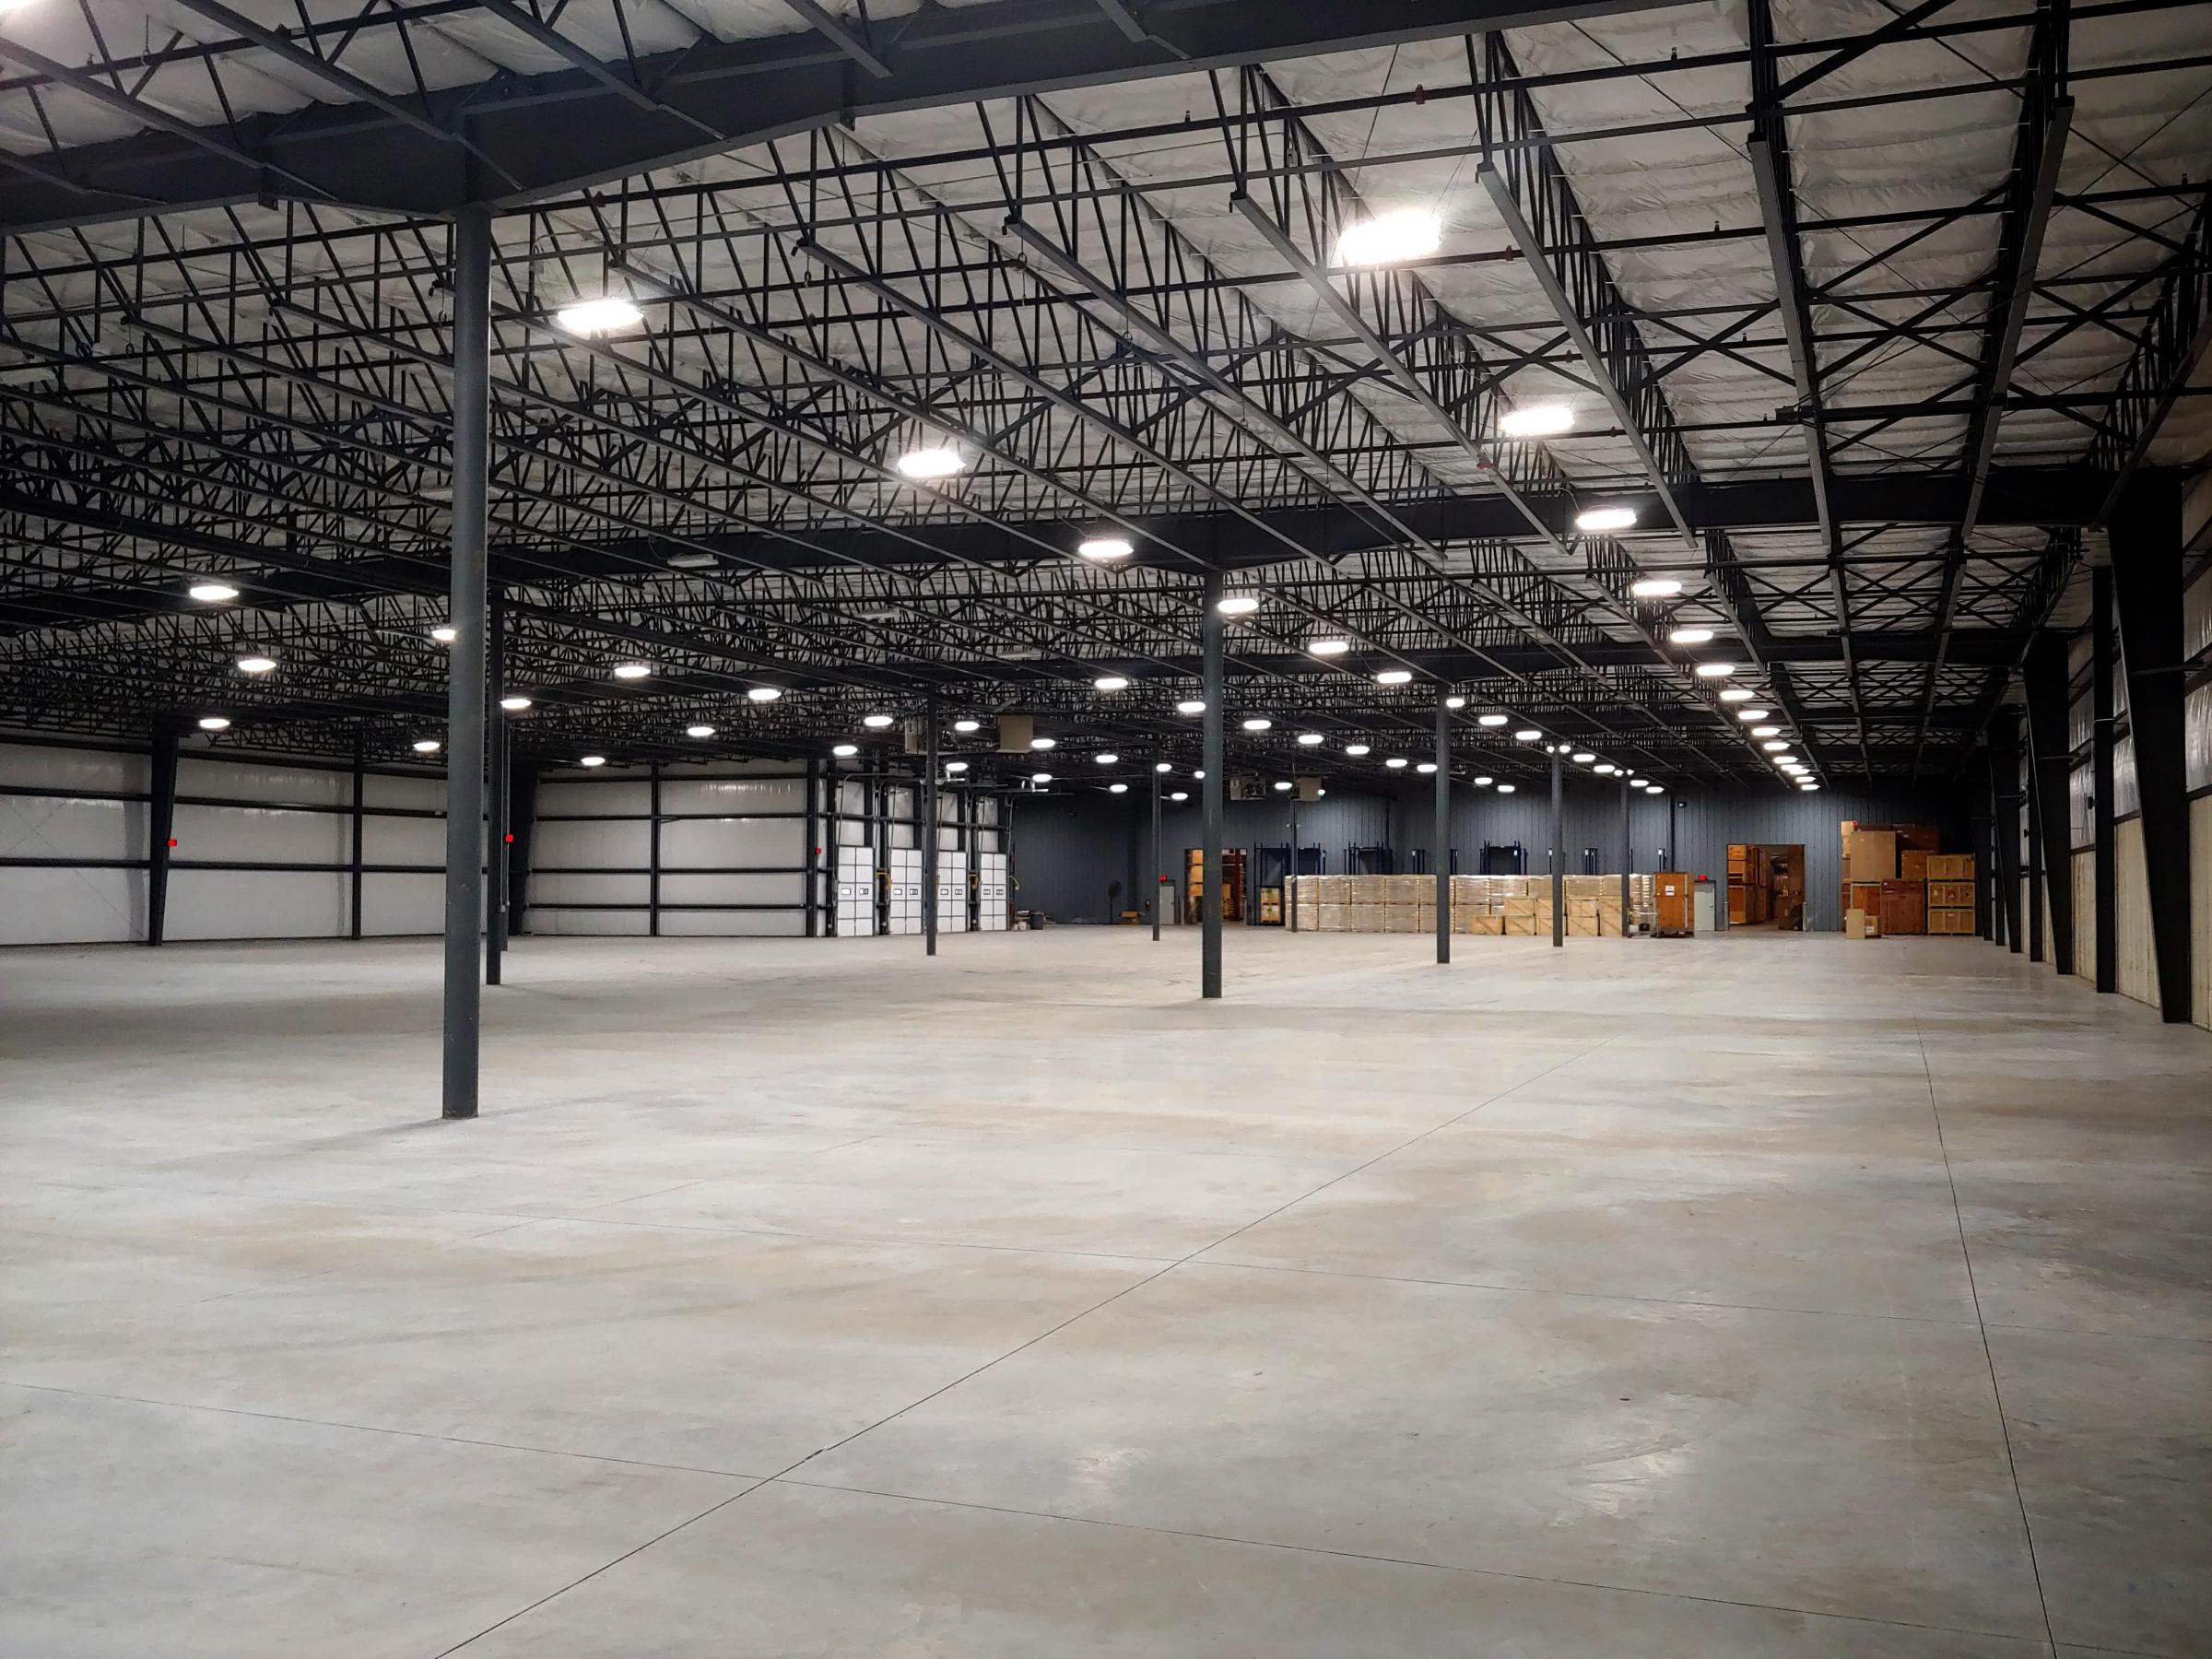 Midwest fulfillment center expanded to better serve customers' supply chain needs